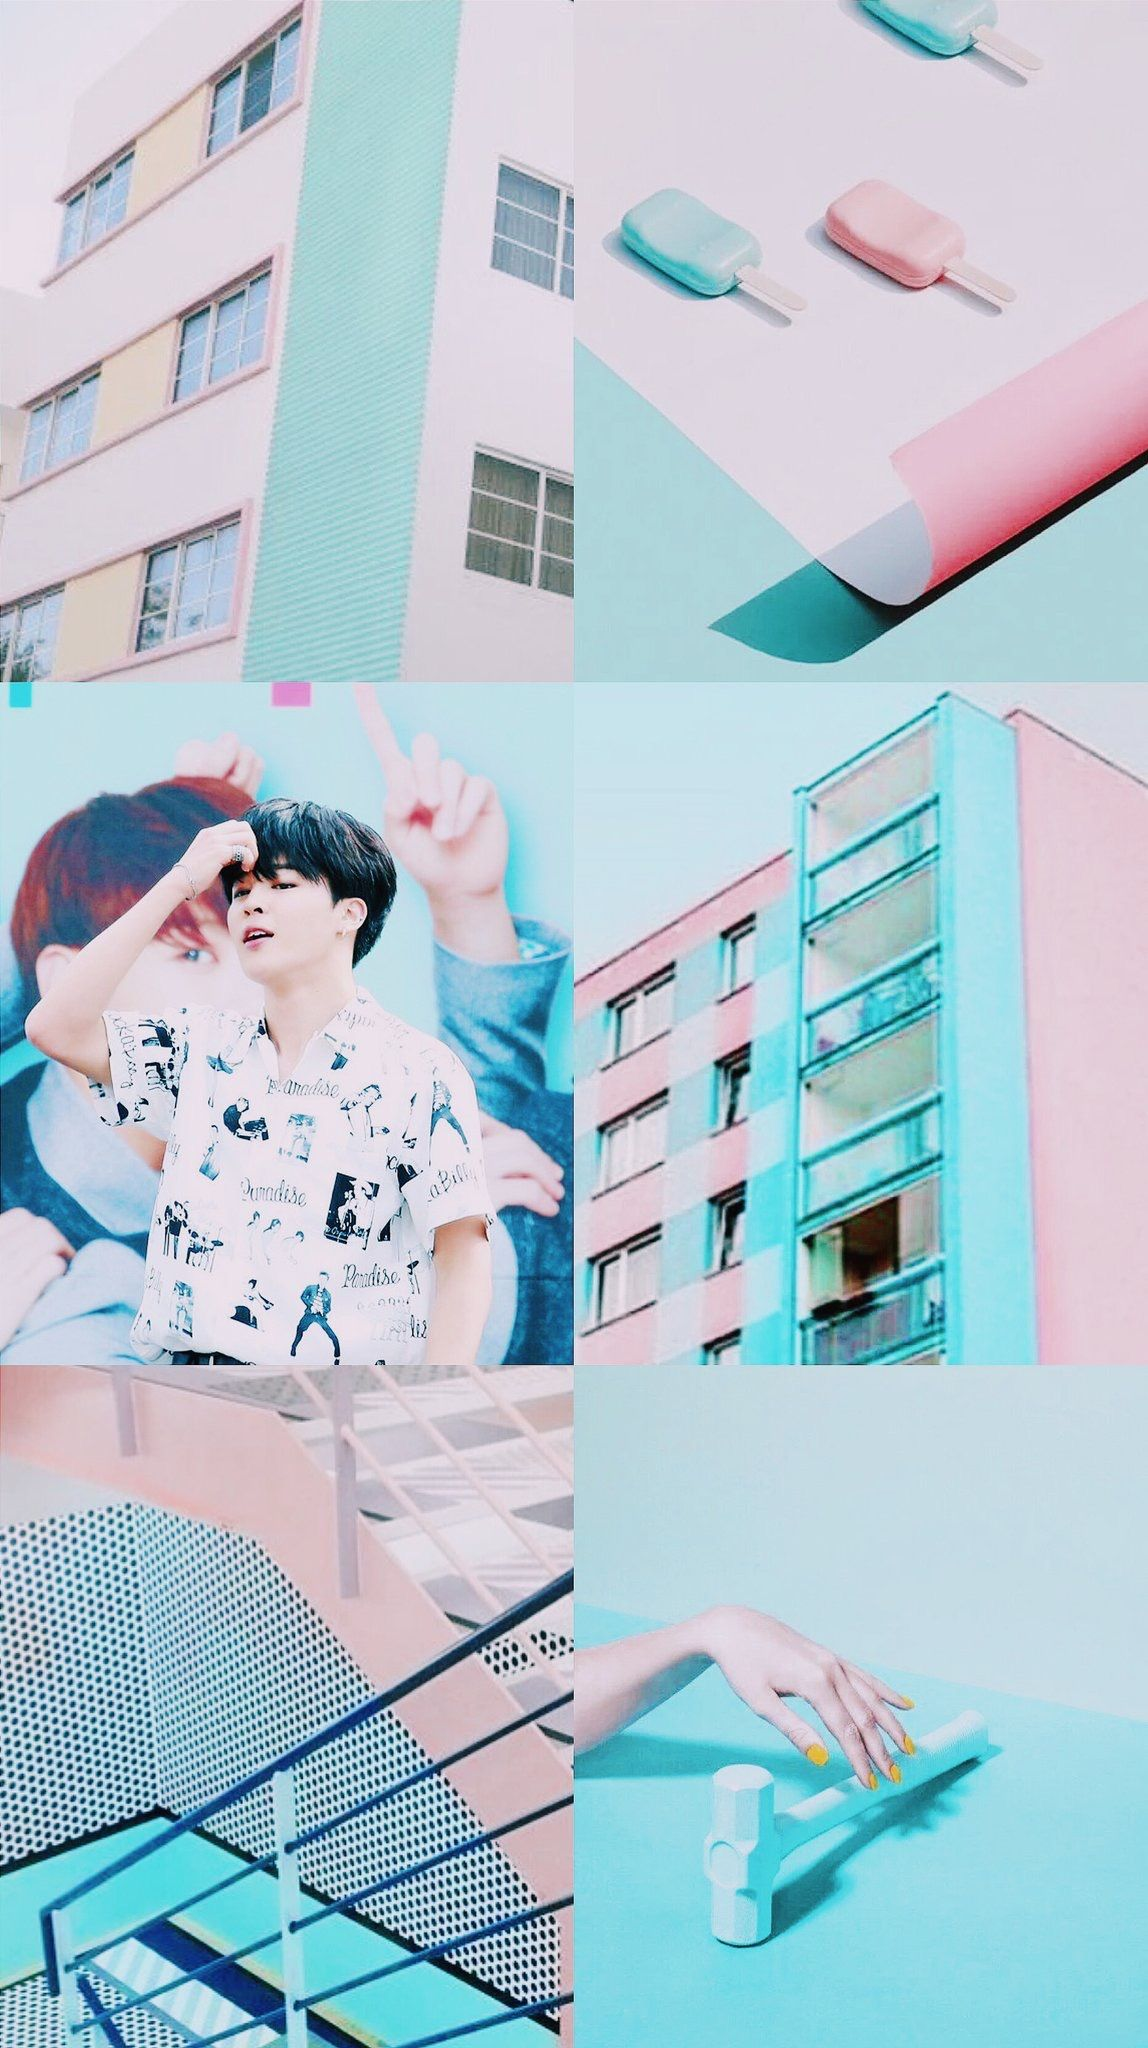 Bts V Aesthetic Wallpaper Hd